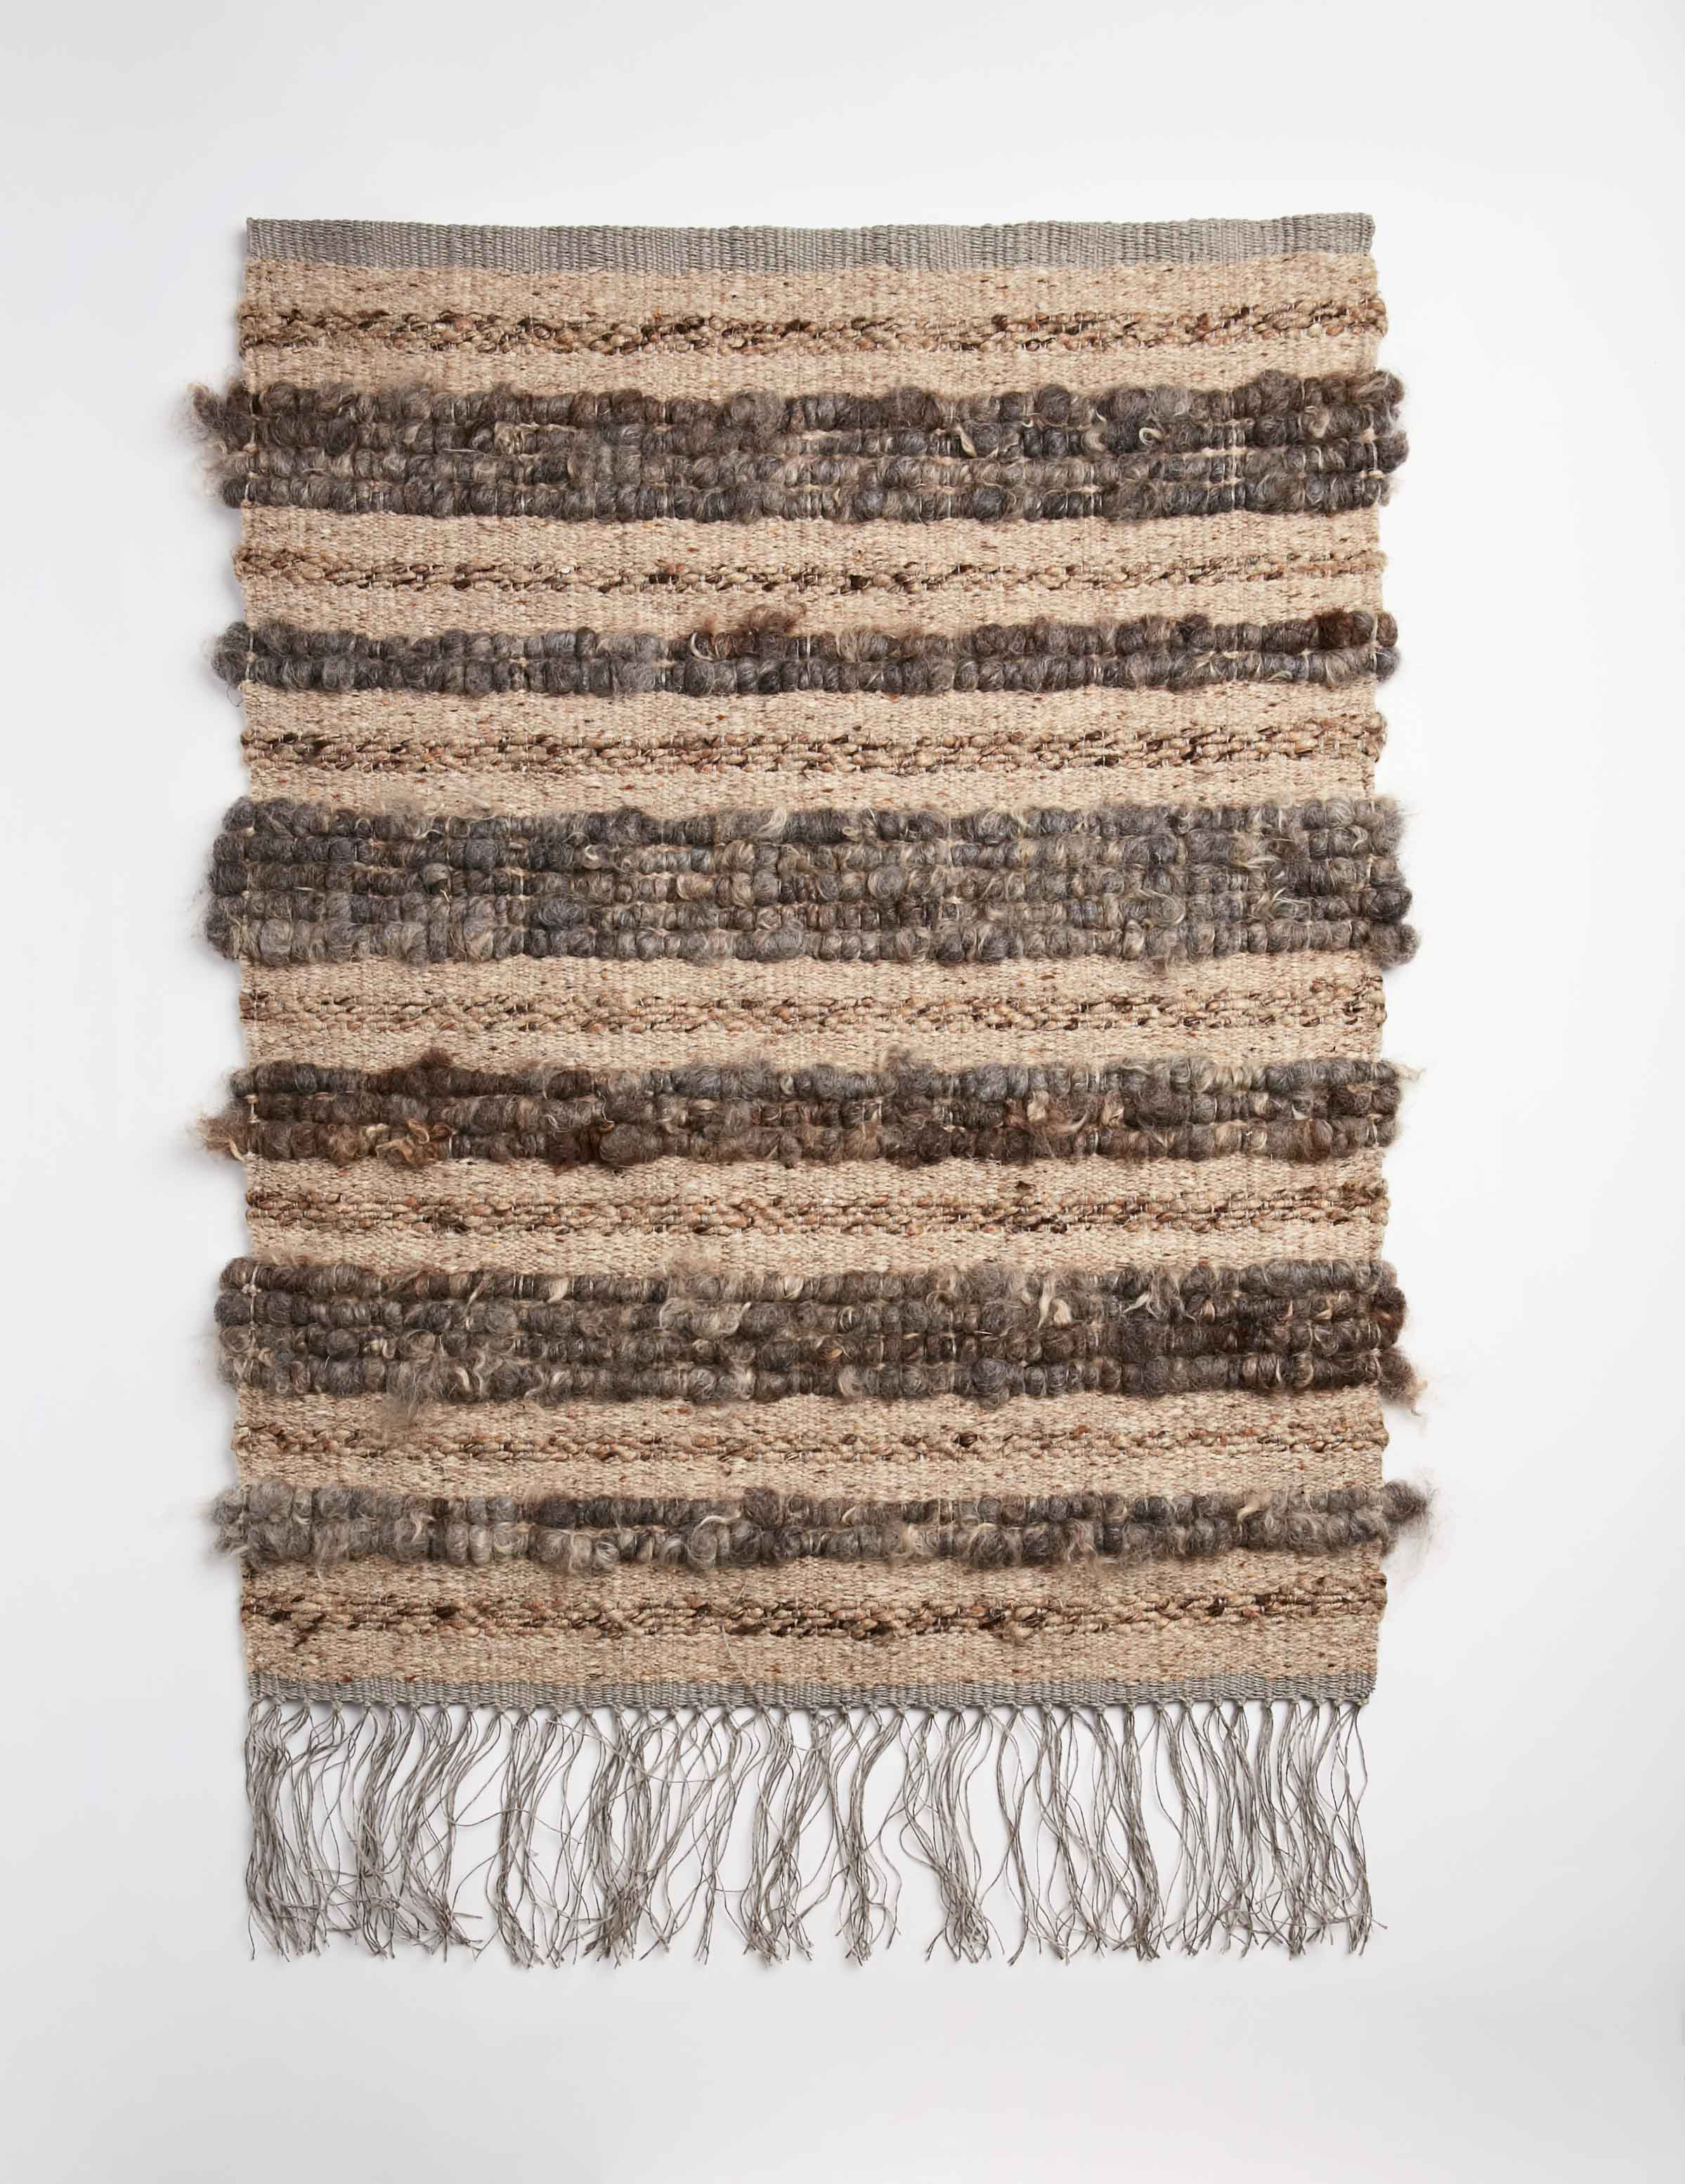 Raw Fleece Wall Hanging - Faded Bracken